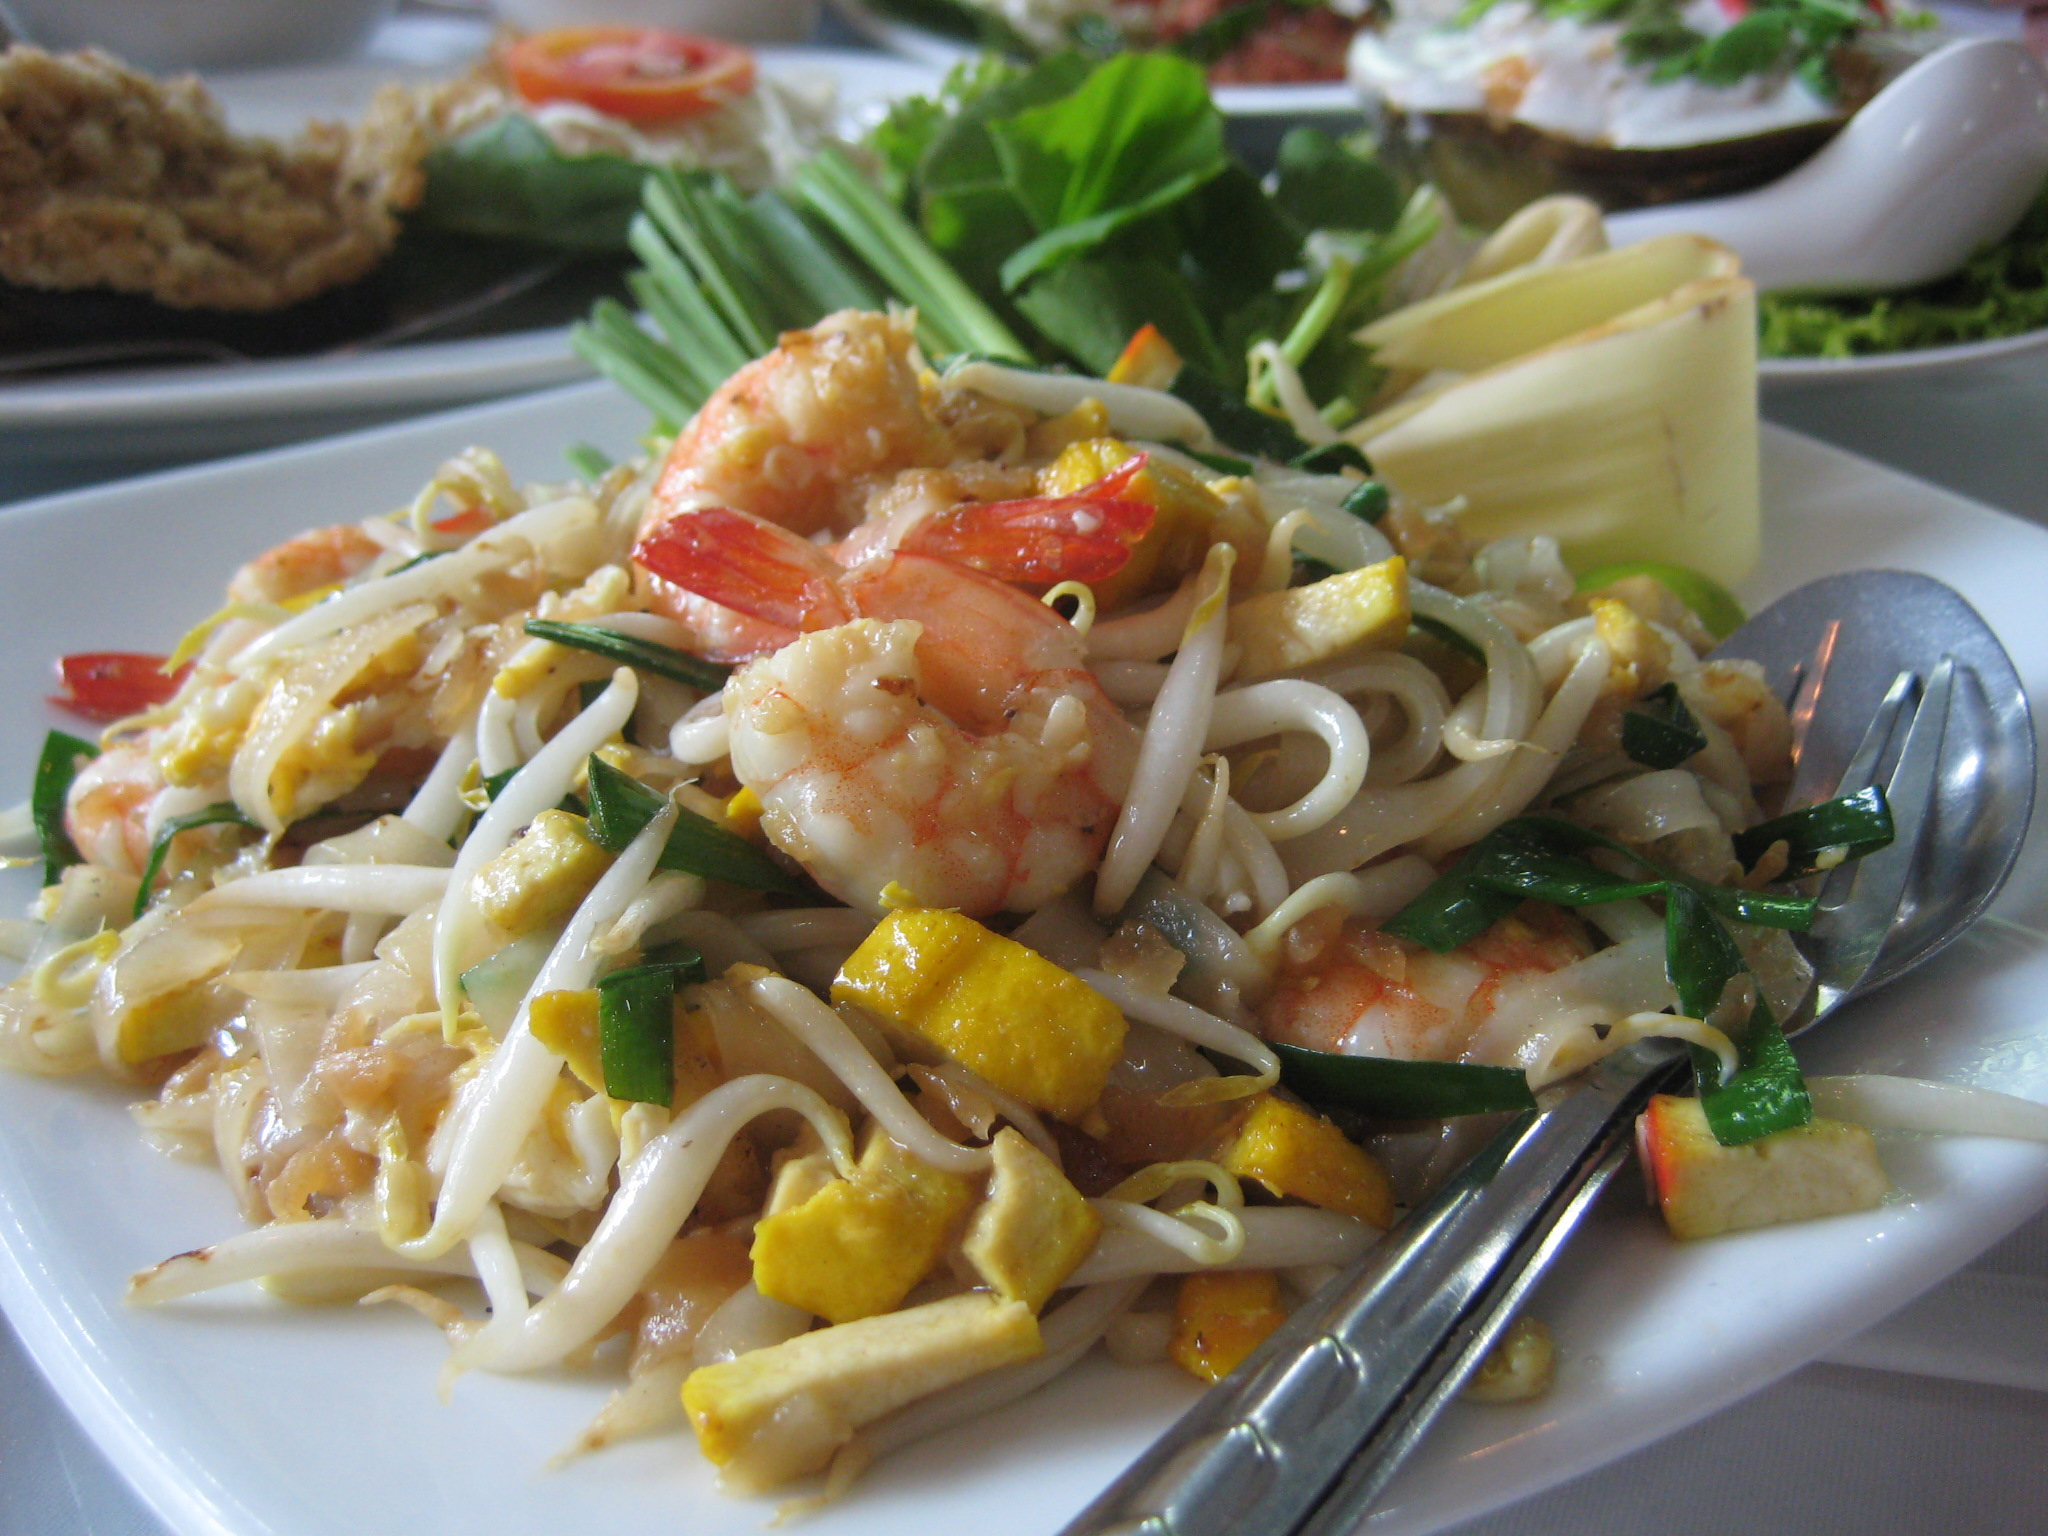 Pad thai recipe dishmaps for About thai cuisine